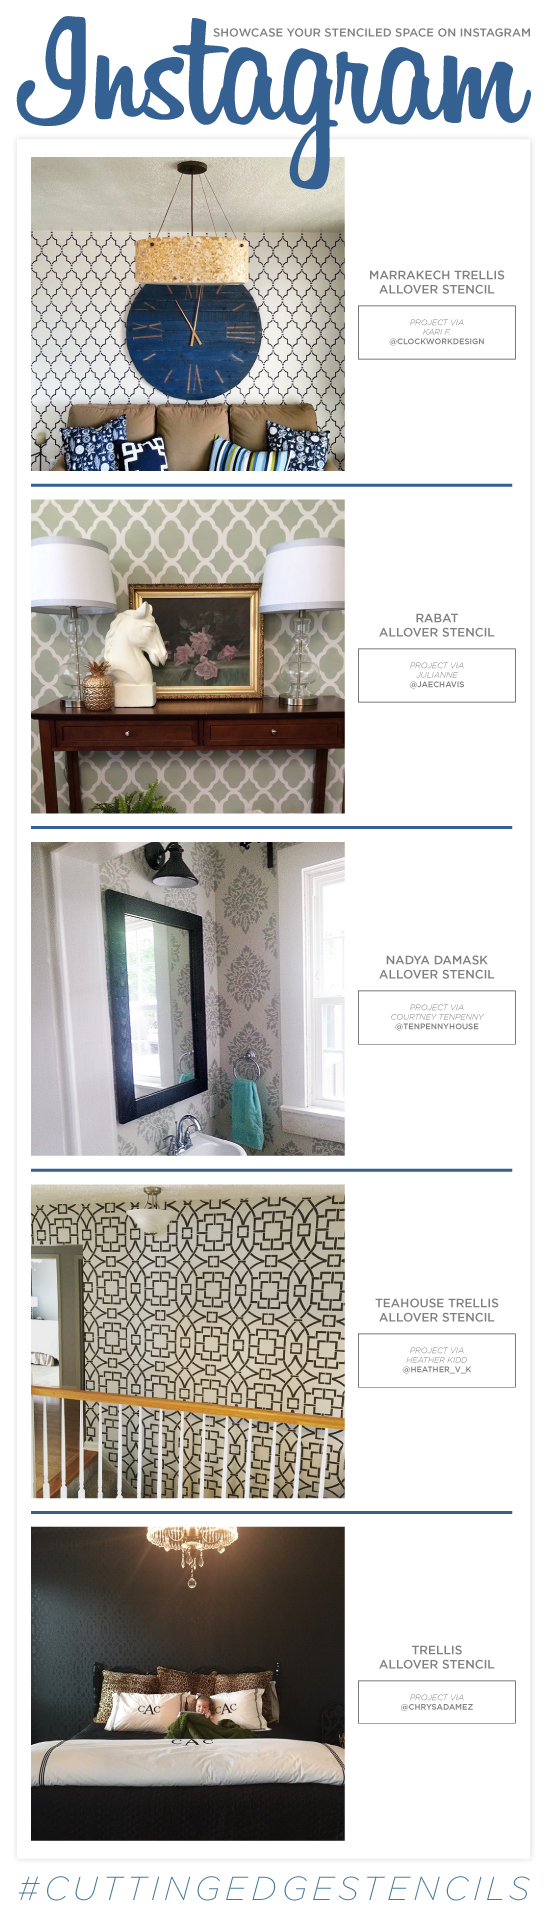 Cutting Edge Stencils shares DIY stenciled room ideas. http://www.cuttingedgestencils.com/wall-stencils-stencil-designs.html